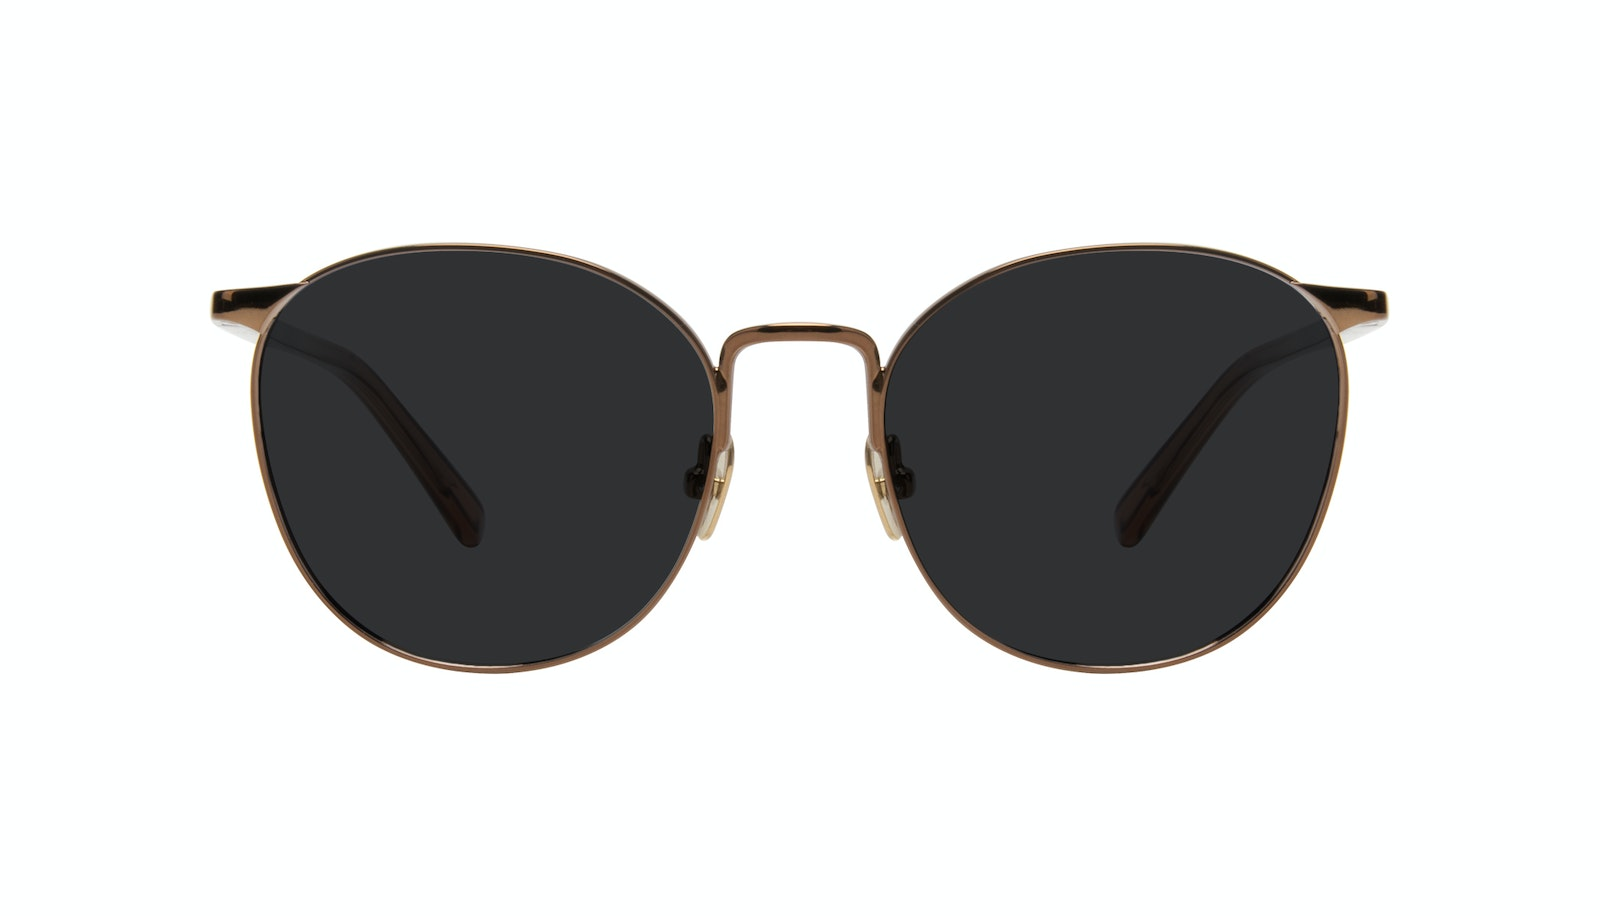 Affordable Fashion Glasses Round Sunglasses Women Romy Petite Crepuscule